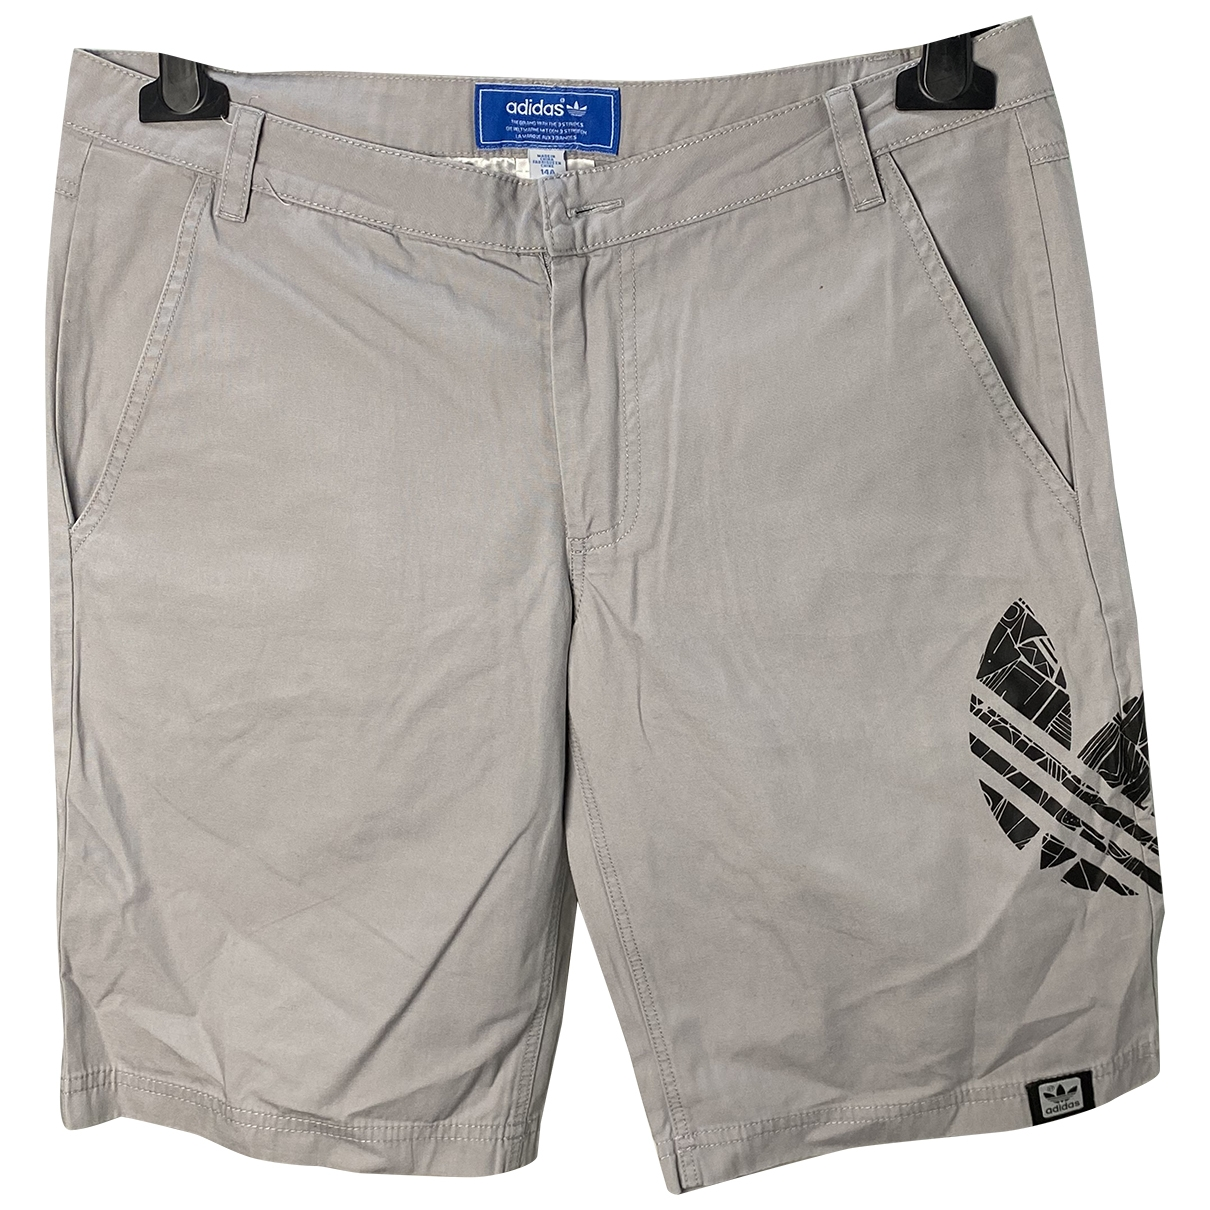 Adidas \N Grey Cotton Shorts for Kids 14 years - S FR